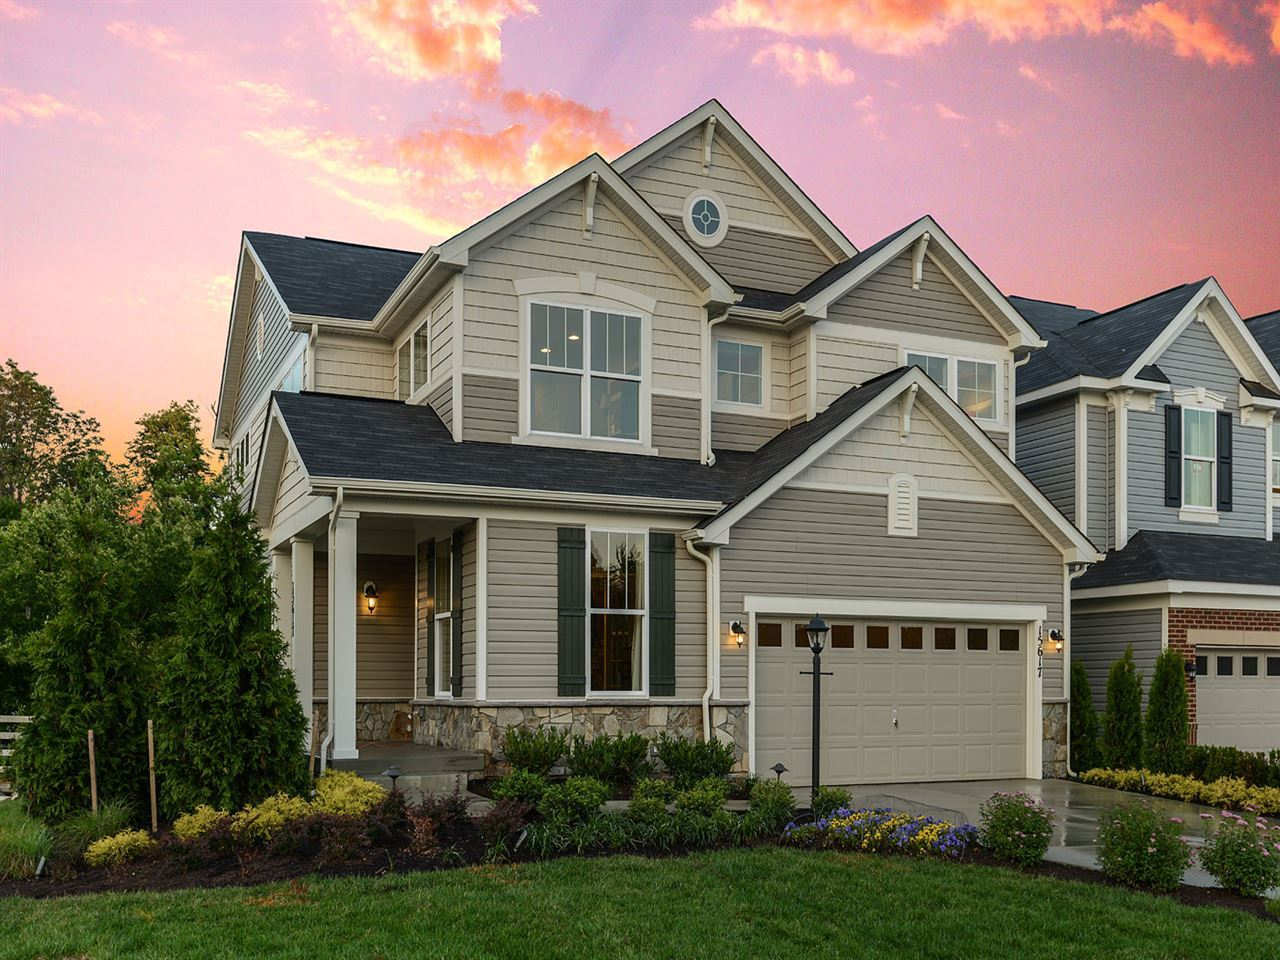 Ryland Homes Norbeck Crossing Single Family Homes Cashel Bay 1092910